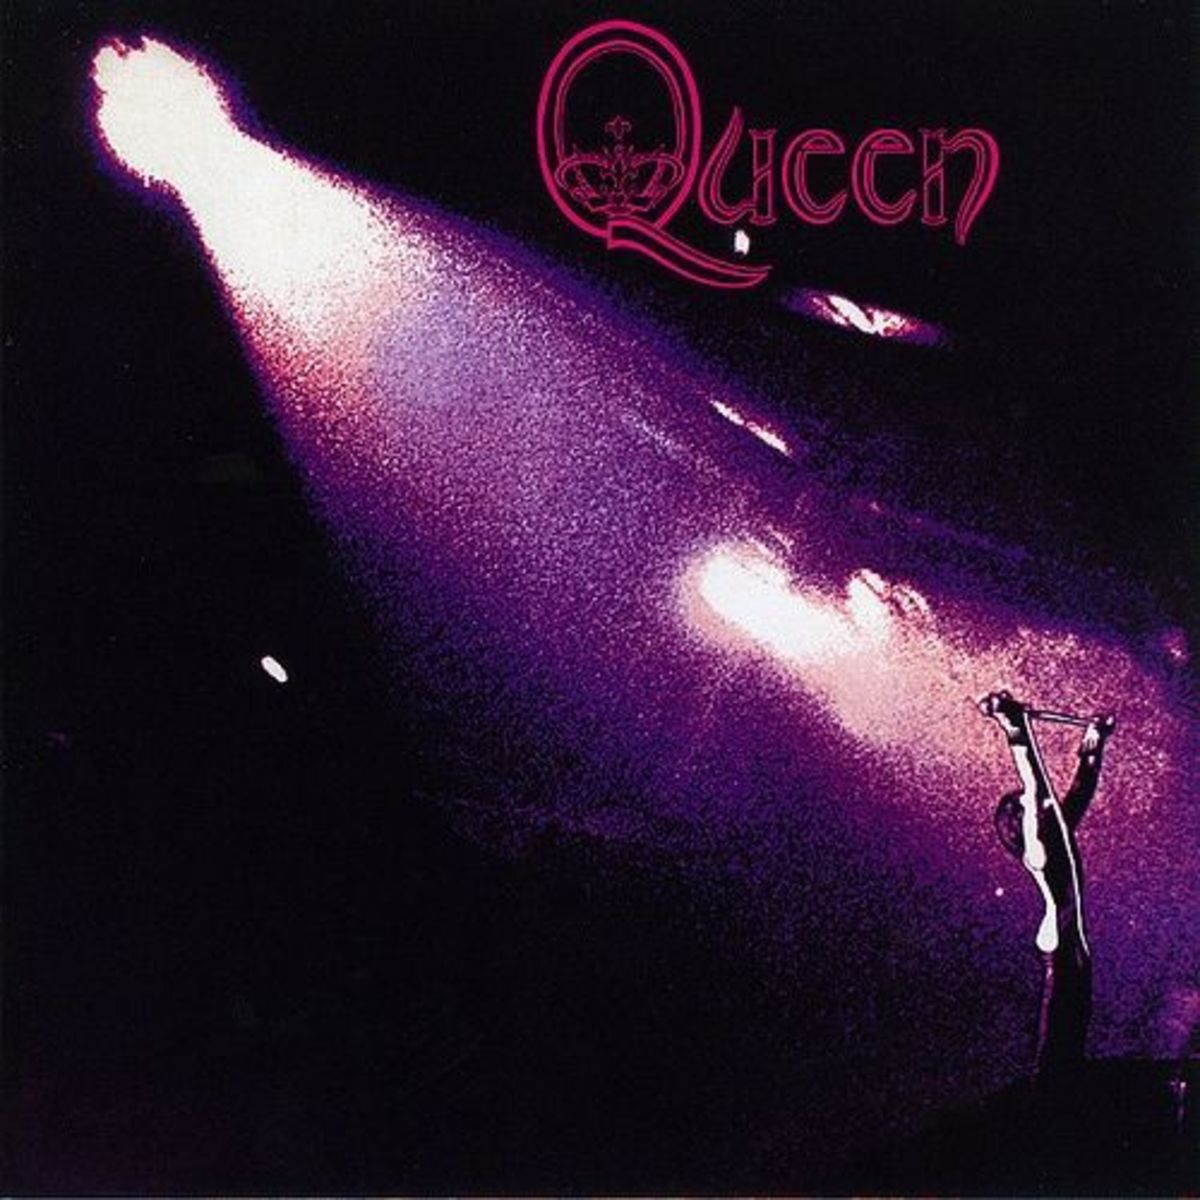 "Queen ""Queen"" Elektra Records EKS-75064 12"" LP Vinyl Record (1973) Album Cover Art by Freddie Mercury"